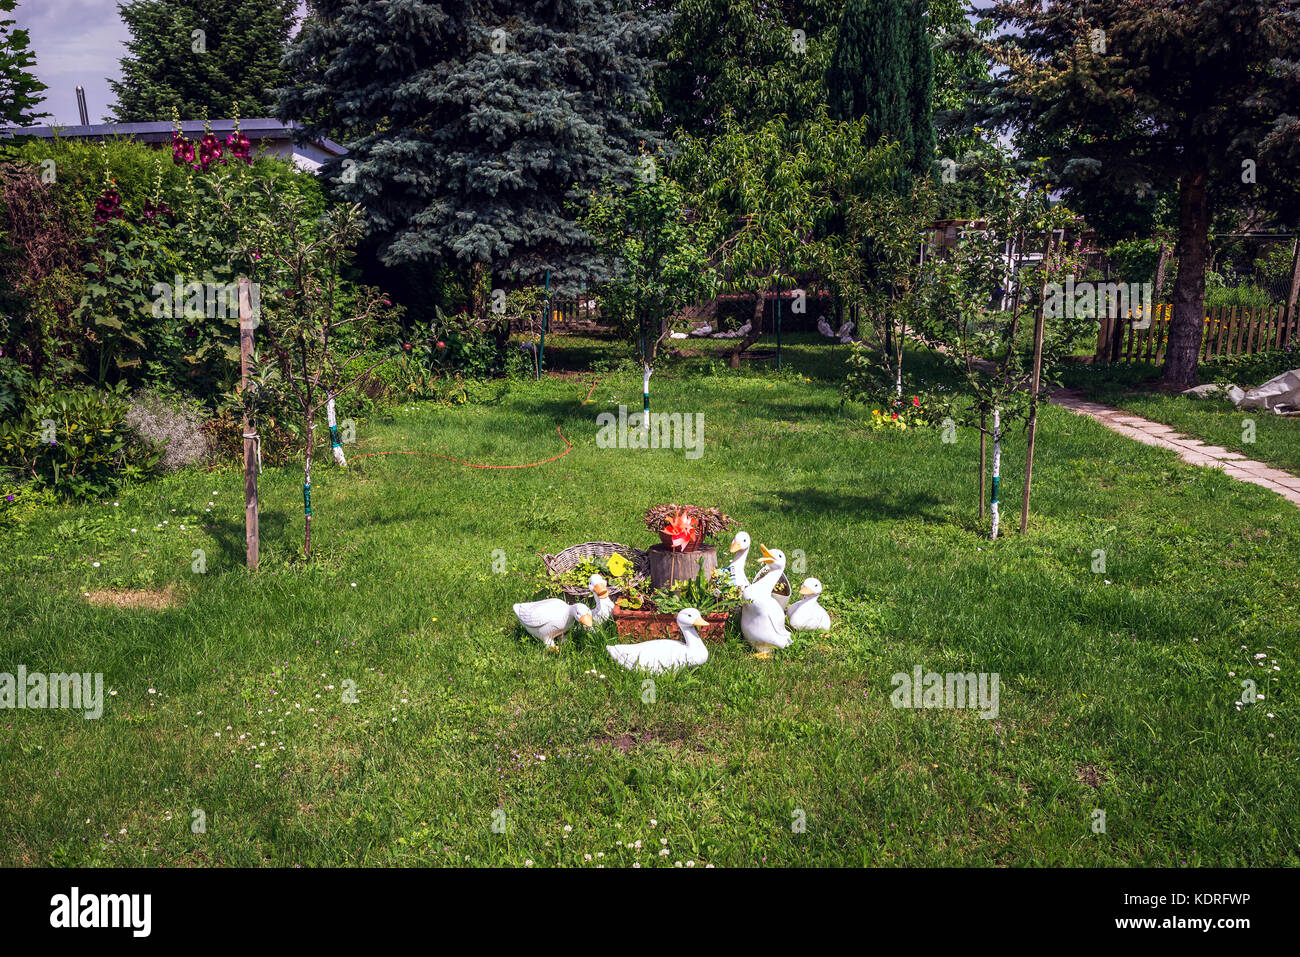 Garden Figures On A Courtyard In Gartz Town In The Uckermark District Of  Brandenburg Federal State In Germany